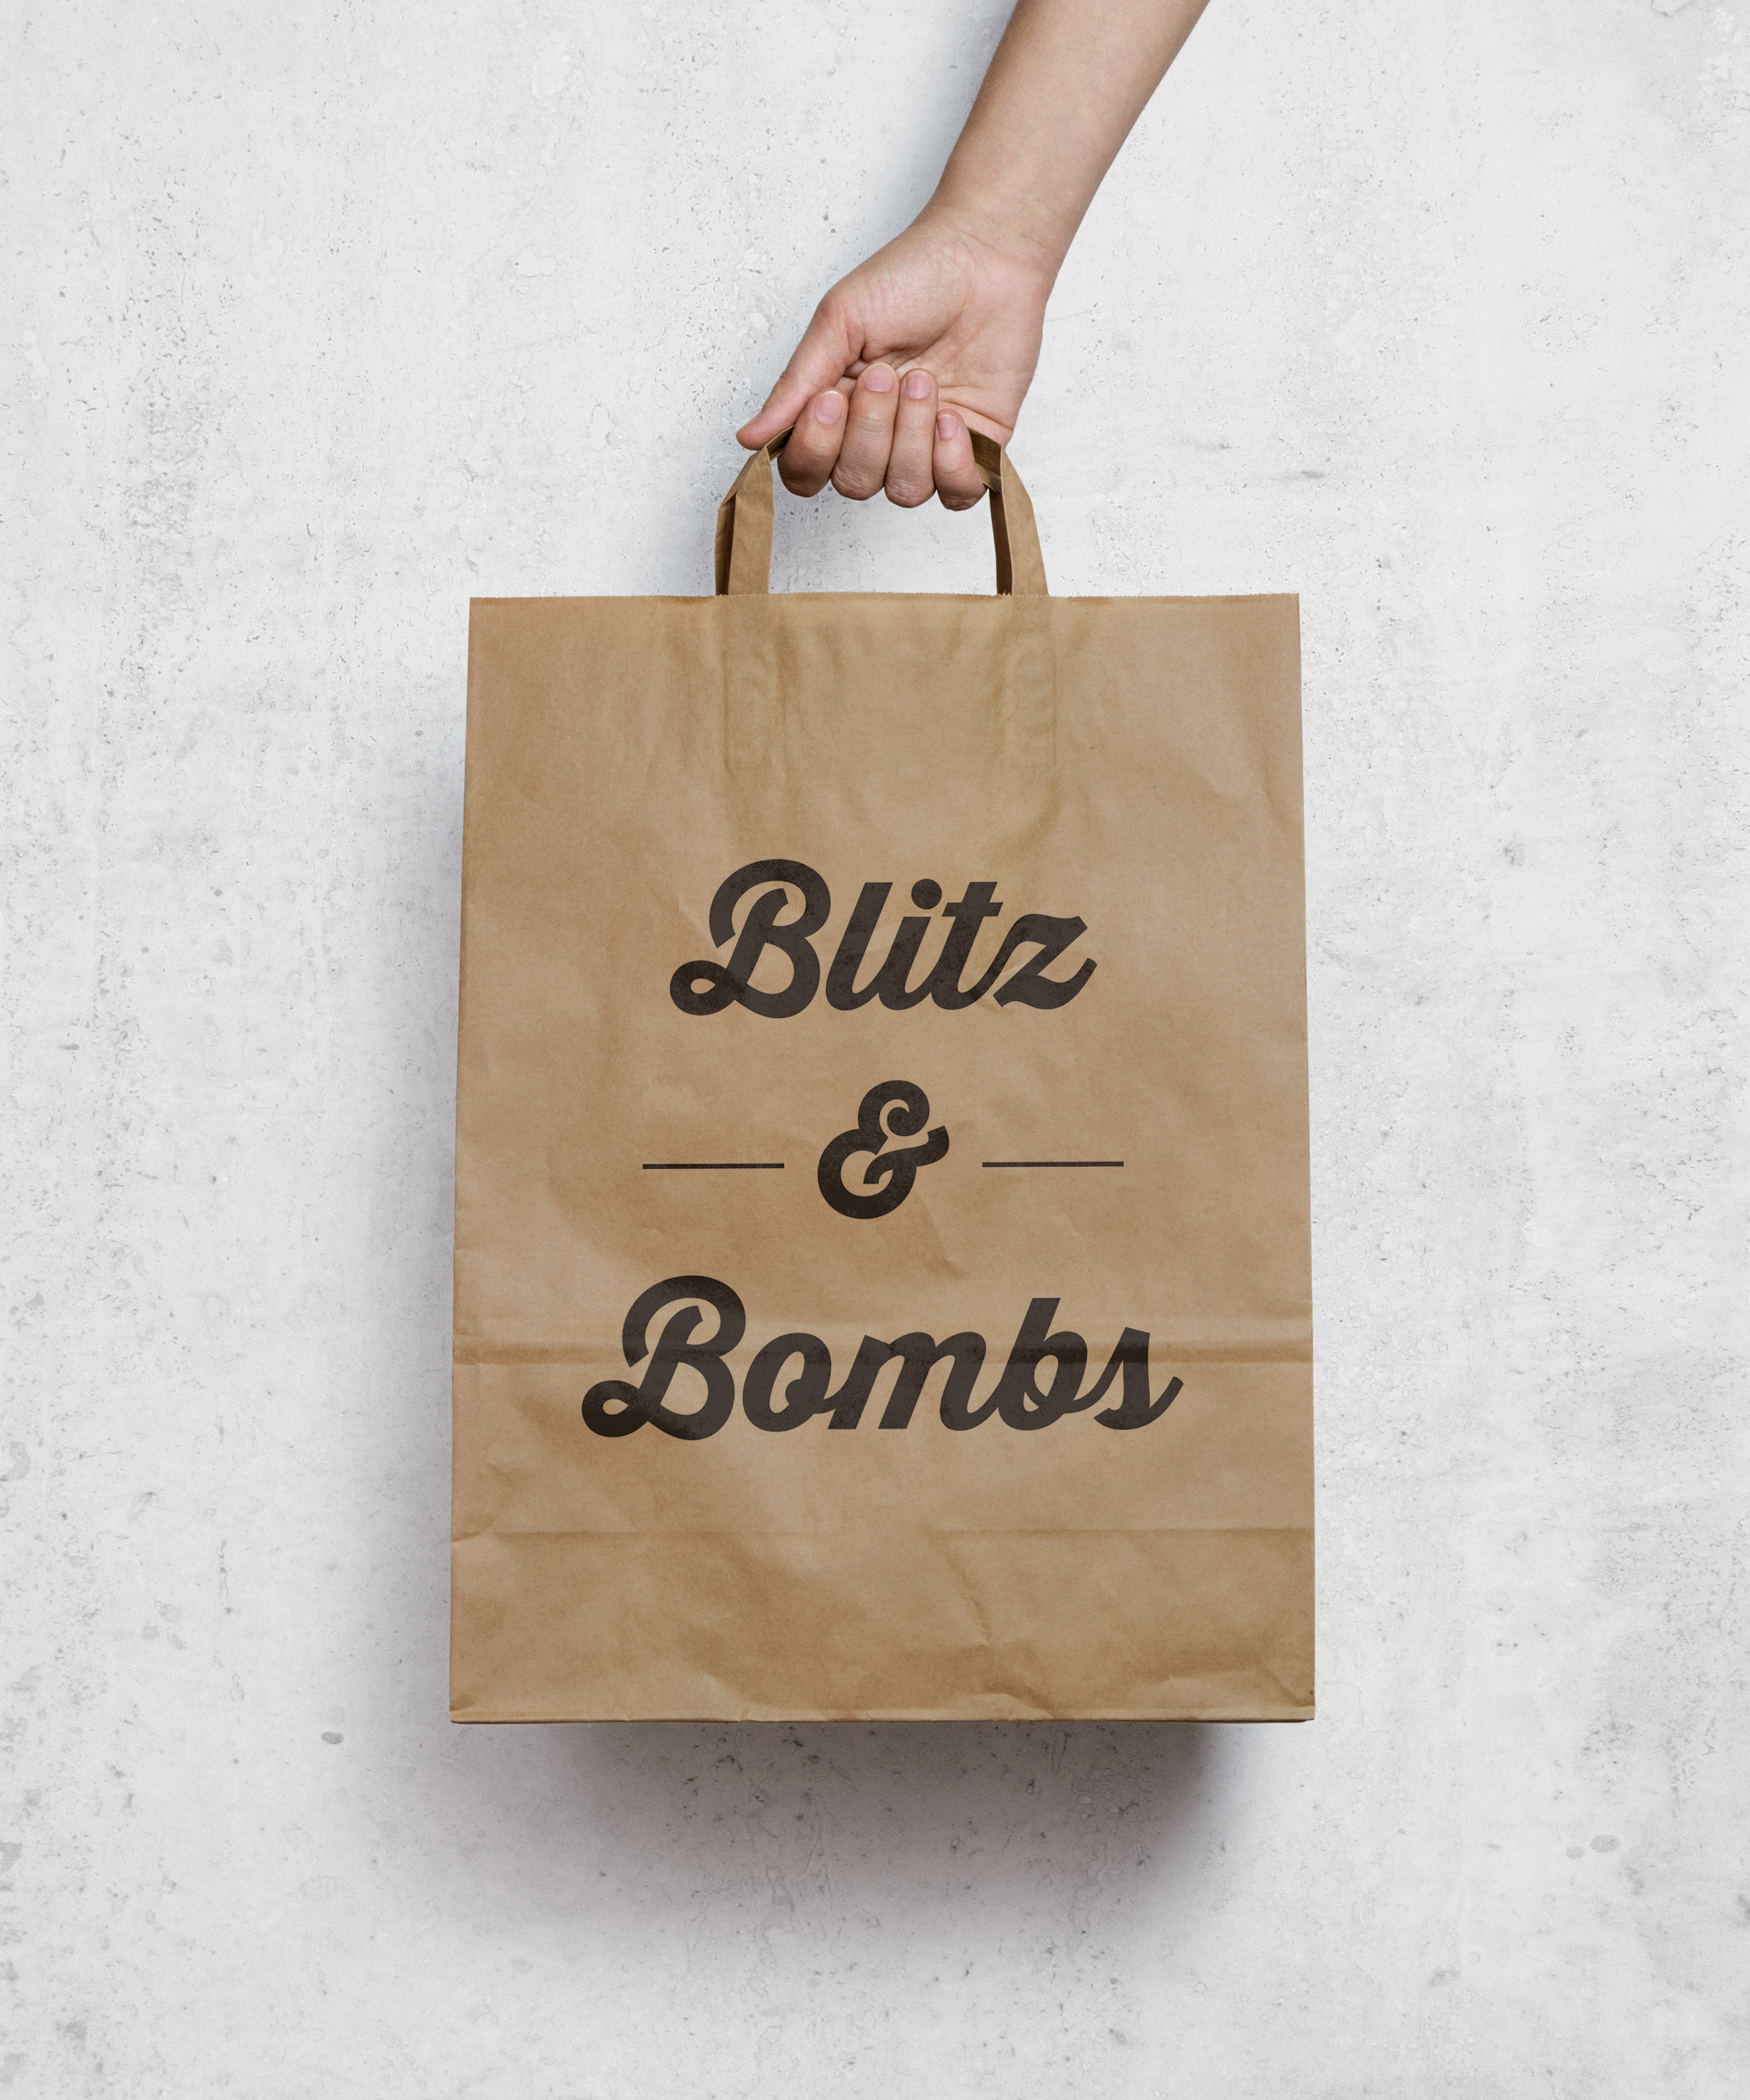 Blitz & Bombs logo and branding